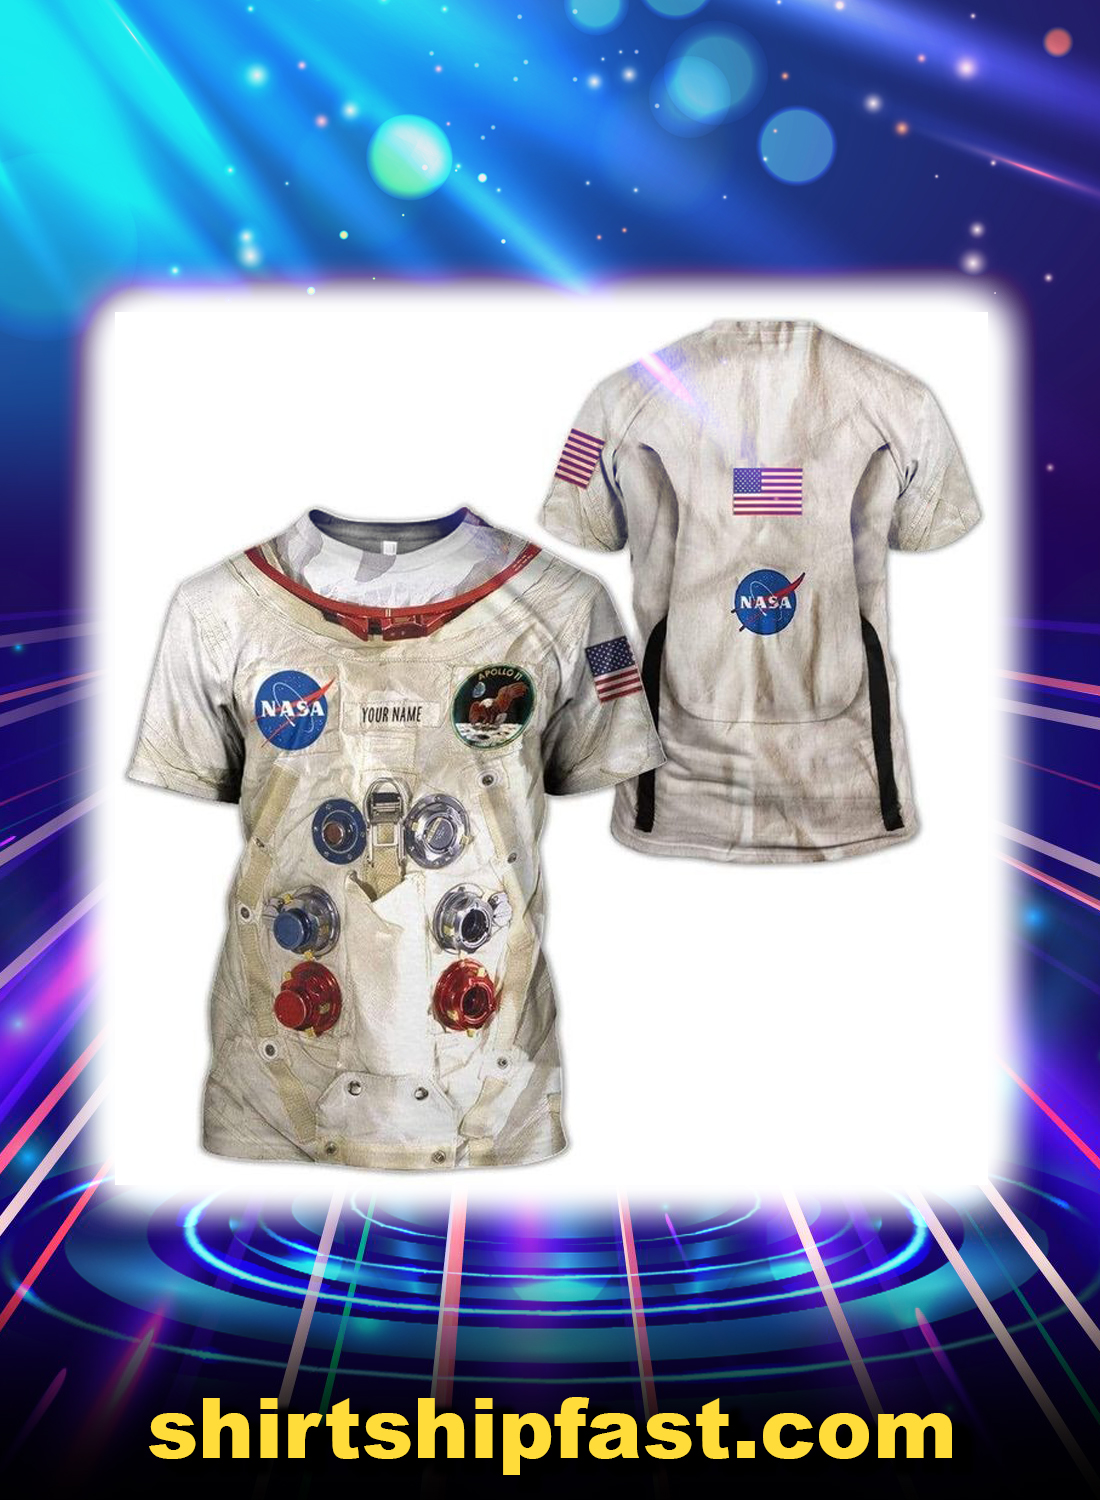 Neil armstrong space suit personalized custom name 3d t-shirt